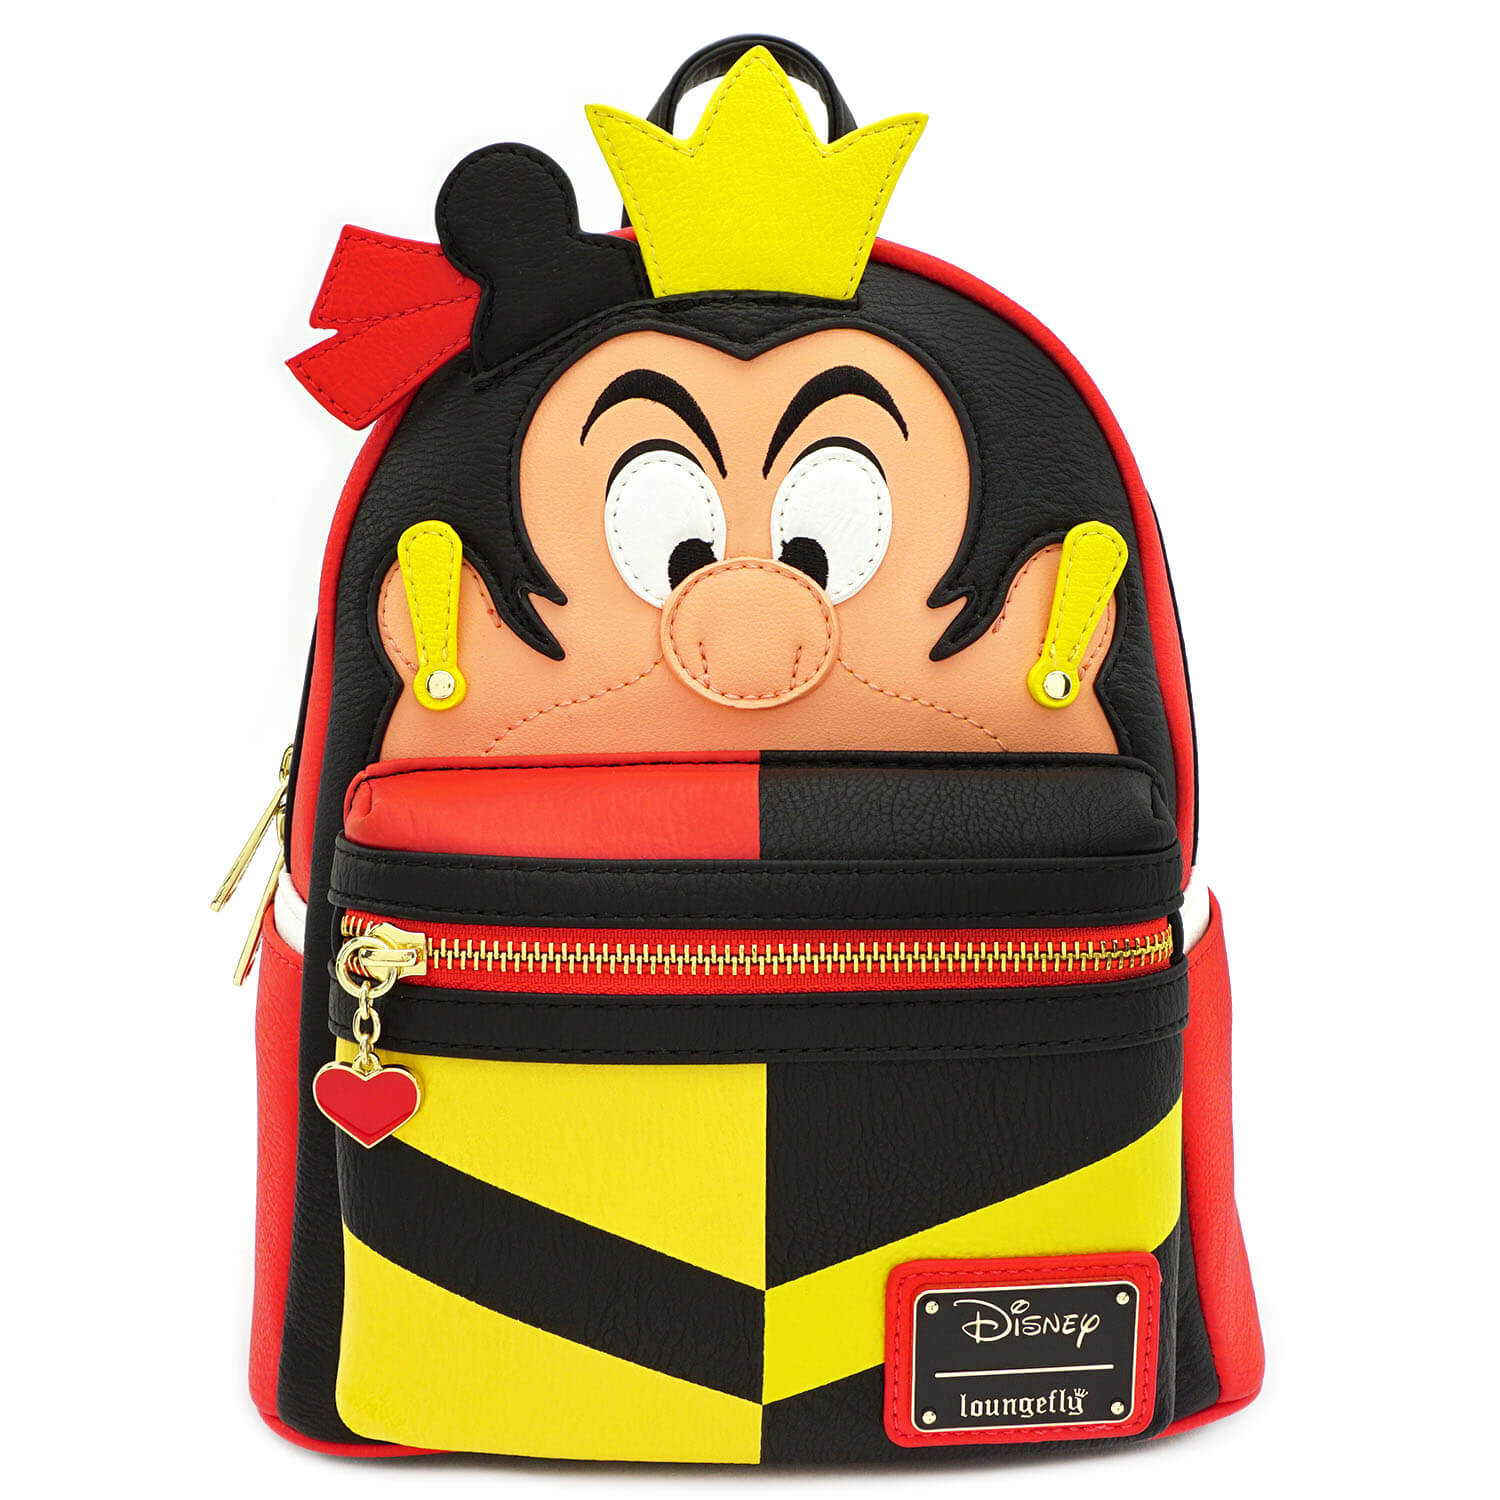 Image of Loungefly Disney Queen Of Hearts Faux Leather Mini Backpack